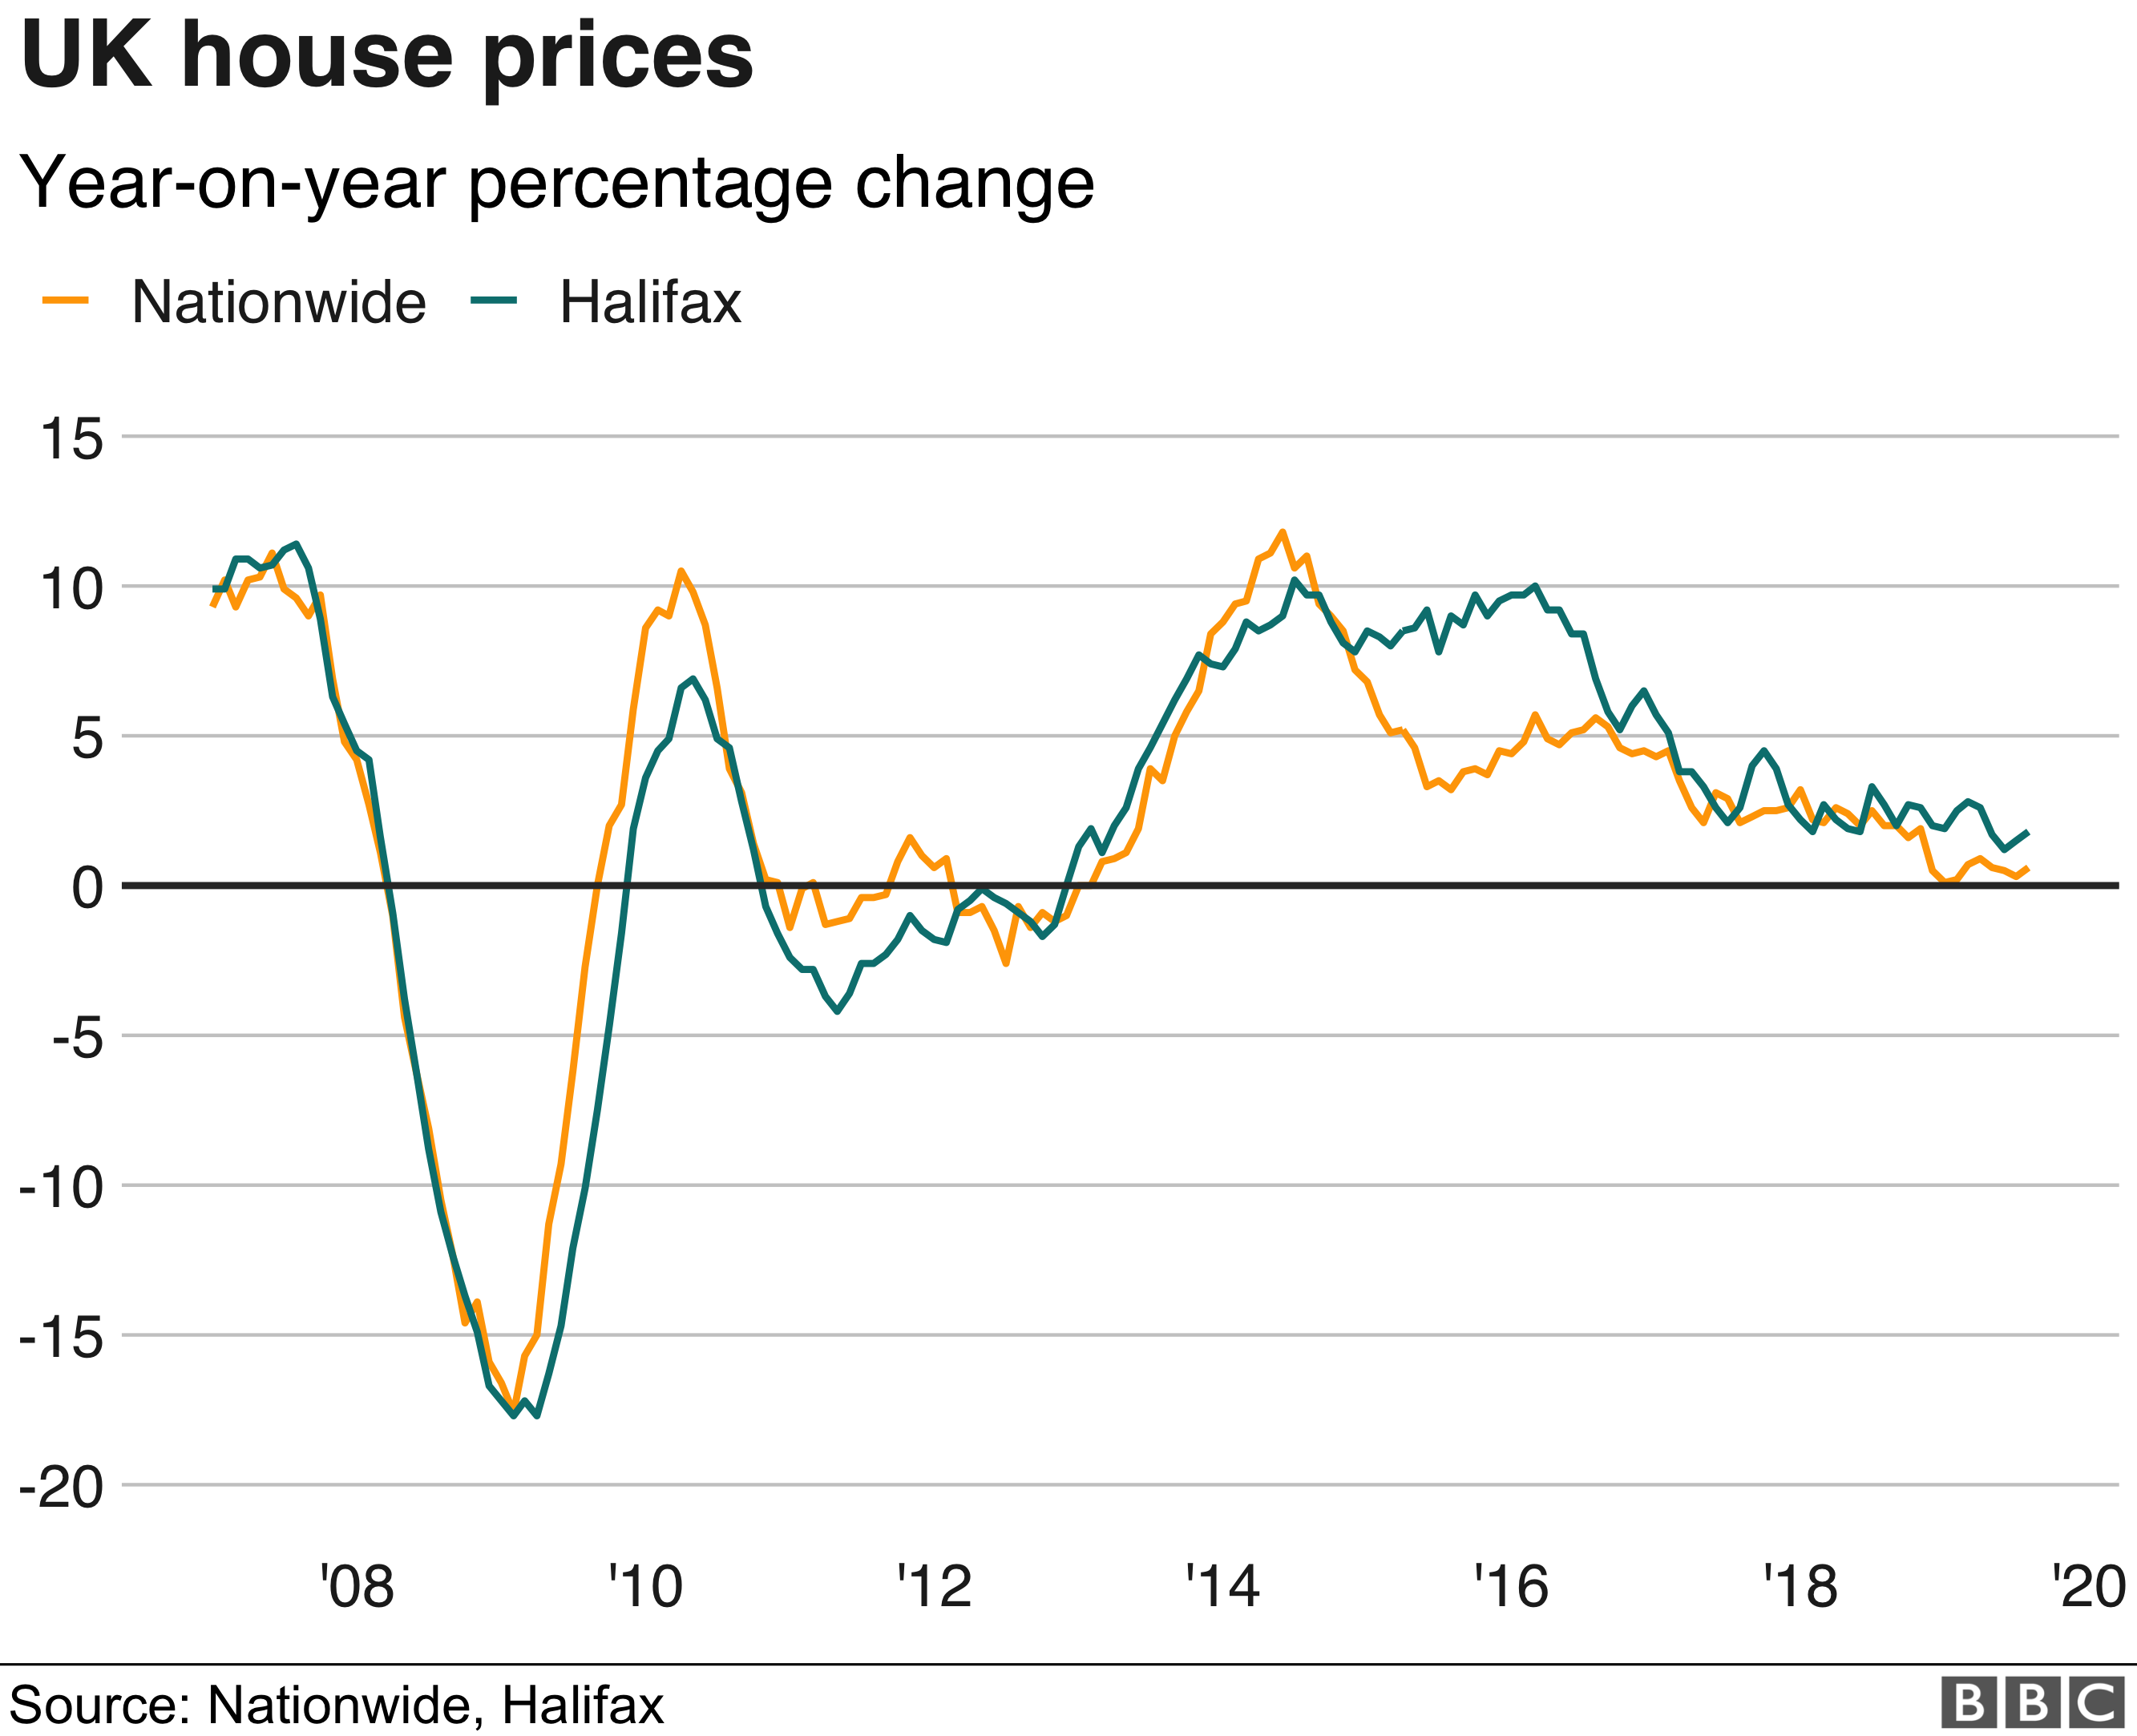 Chart showing year-on-year % house price change